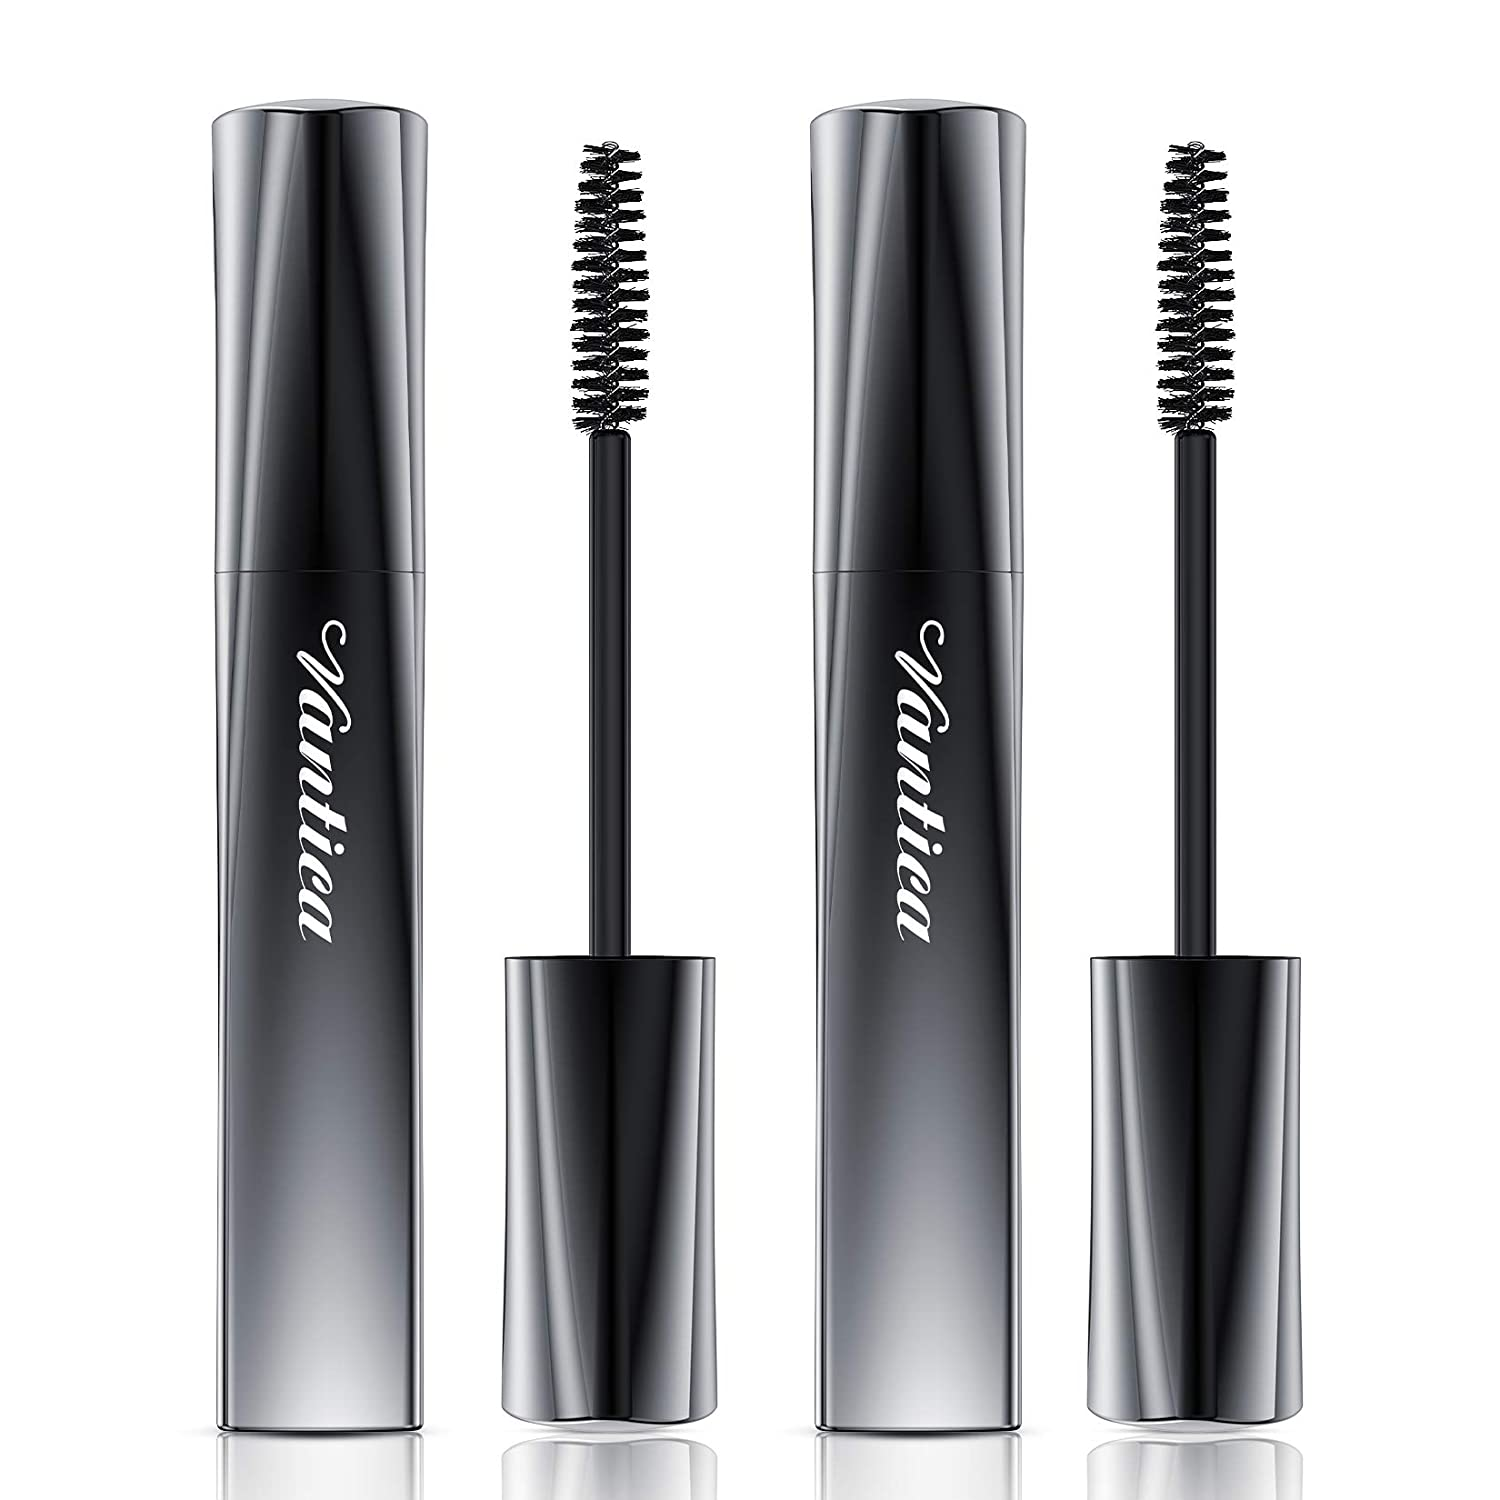 Special price for a limited 2021 spring and summer new time Vantica Mascara Waterproof Makeup 4D Voluminous Fiber Lash Silk